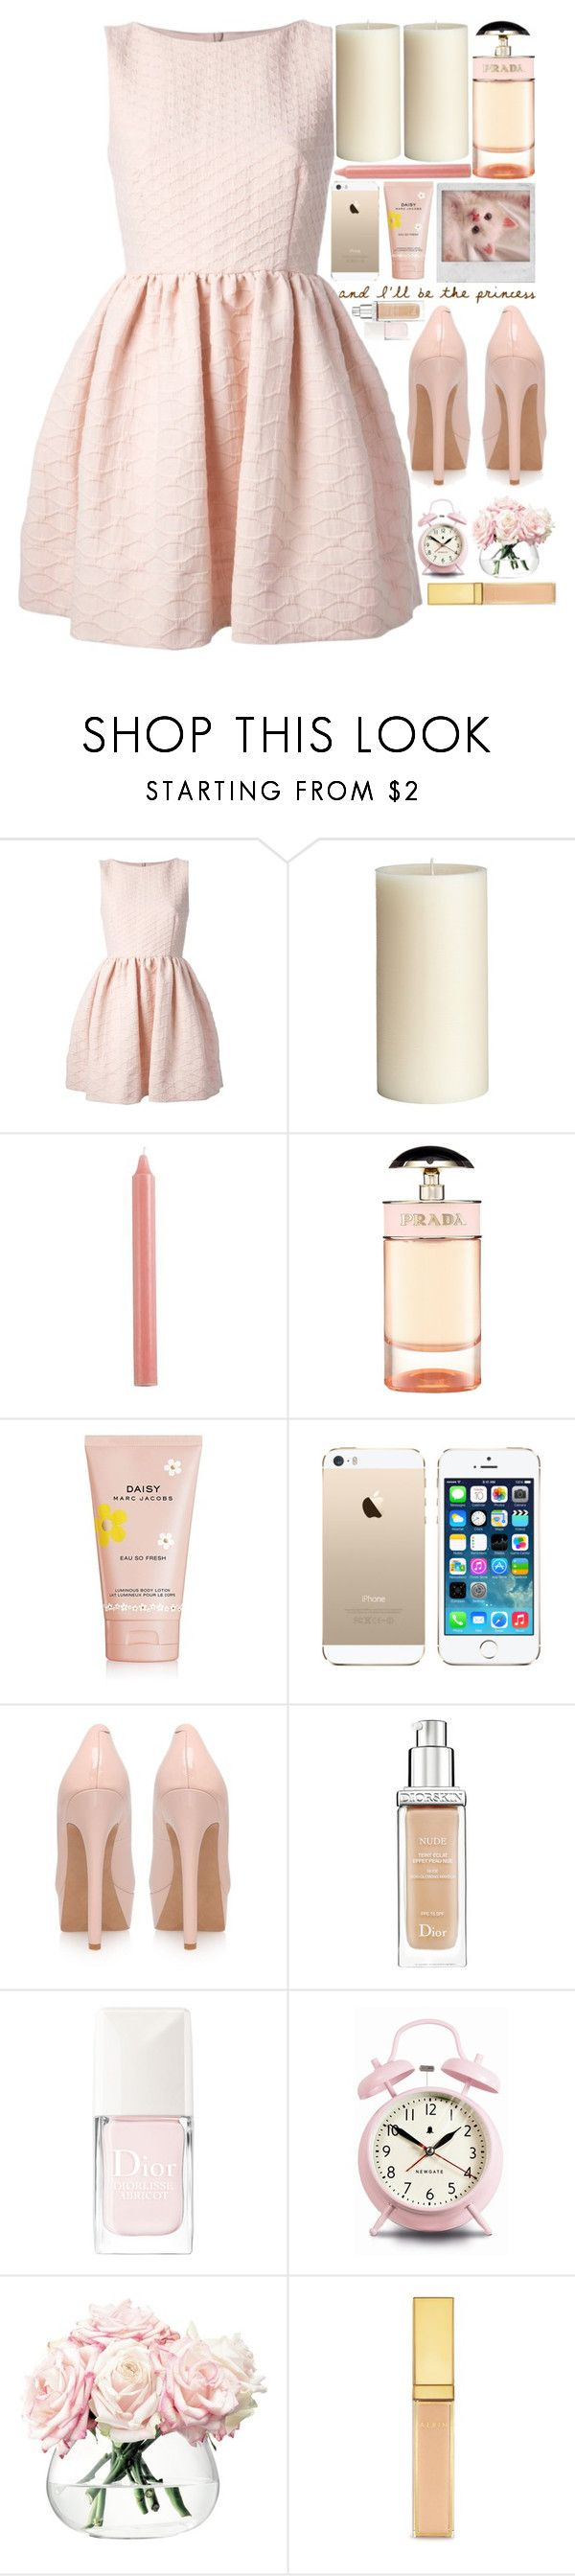 """""""He whispers songs into my window and words that nobody knows"""" by theofficialpretties ❤ liked on Polyvore featuring RED Valentino, Pier 1 Imports, Prada, Marc Jacobs, Polaroid, Jessica Simpson, Christian Dior, Newgate, LSA International and AERIN"""